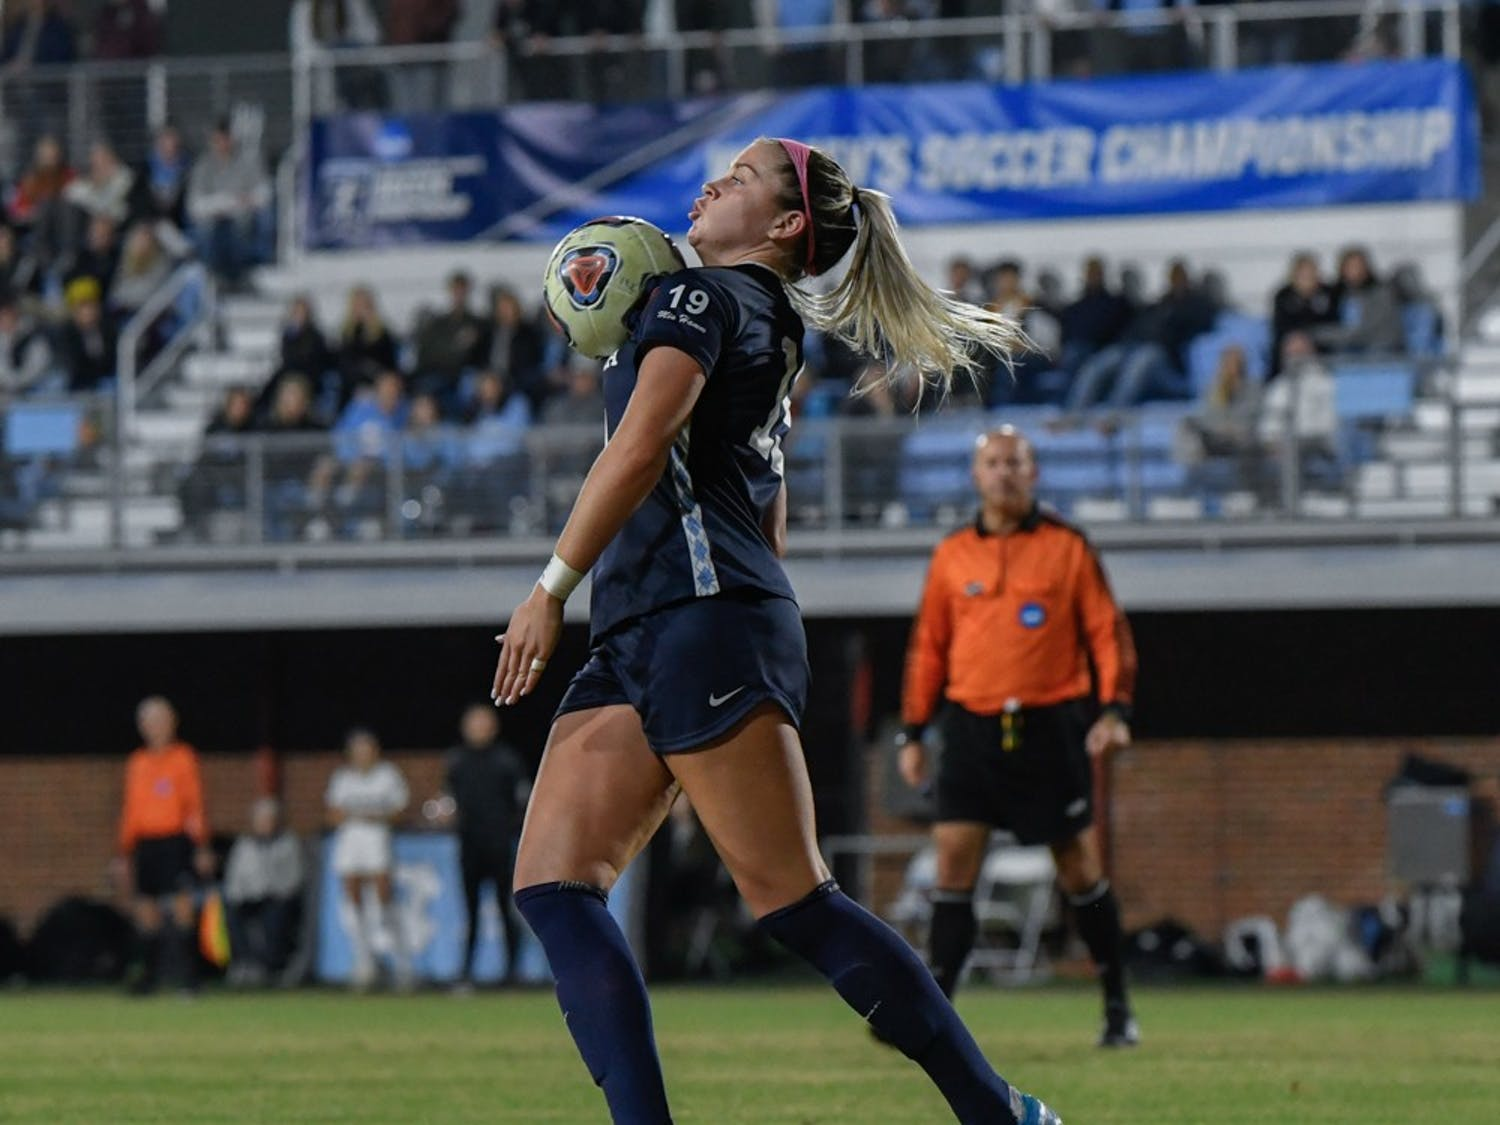 UNC Forward Alessia Russo (19) traps the ball out of the air to progress an offensive push.  North Carolina defeated Colorado 1-0 at Chapel Hill in the second round of the NCAA Women's soccer tournament on Friday, Nov. 22, 2019.